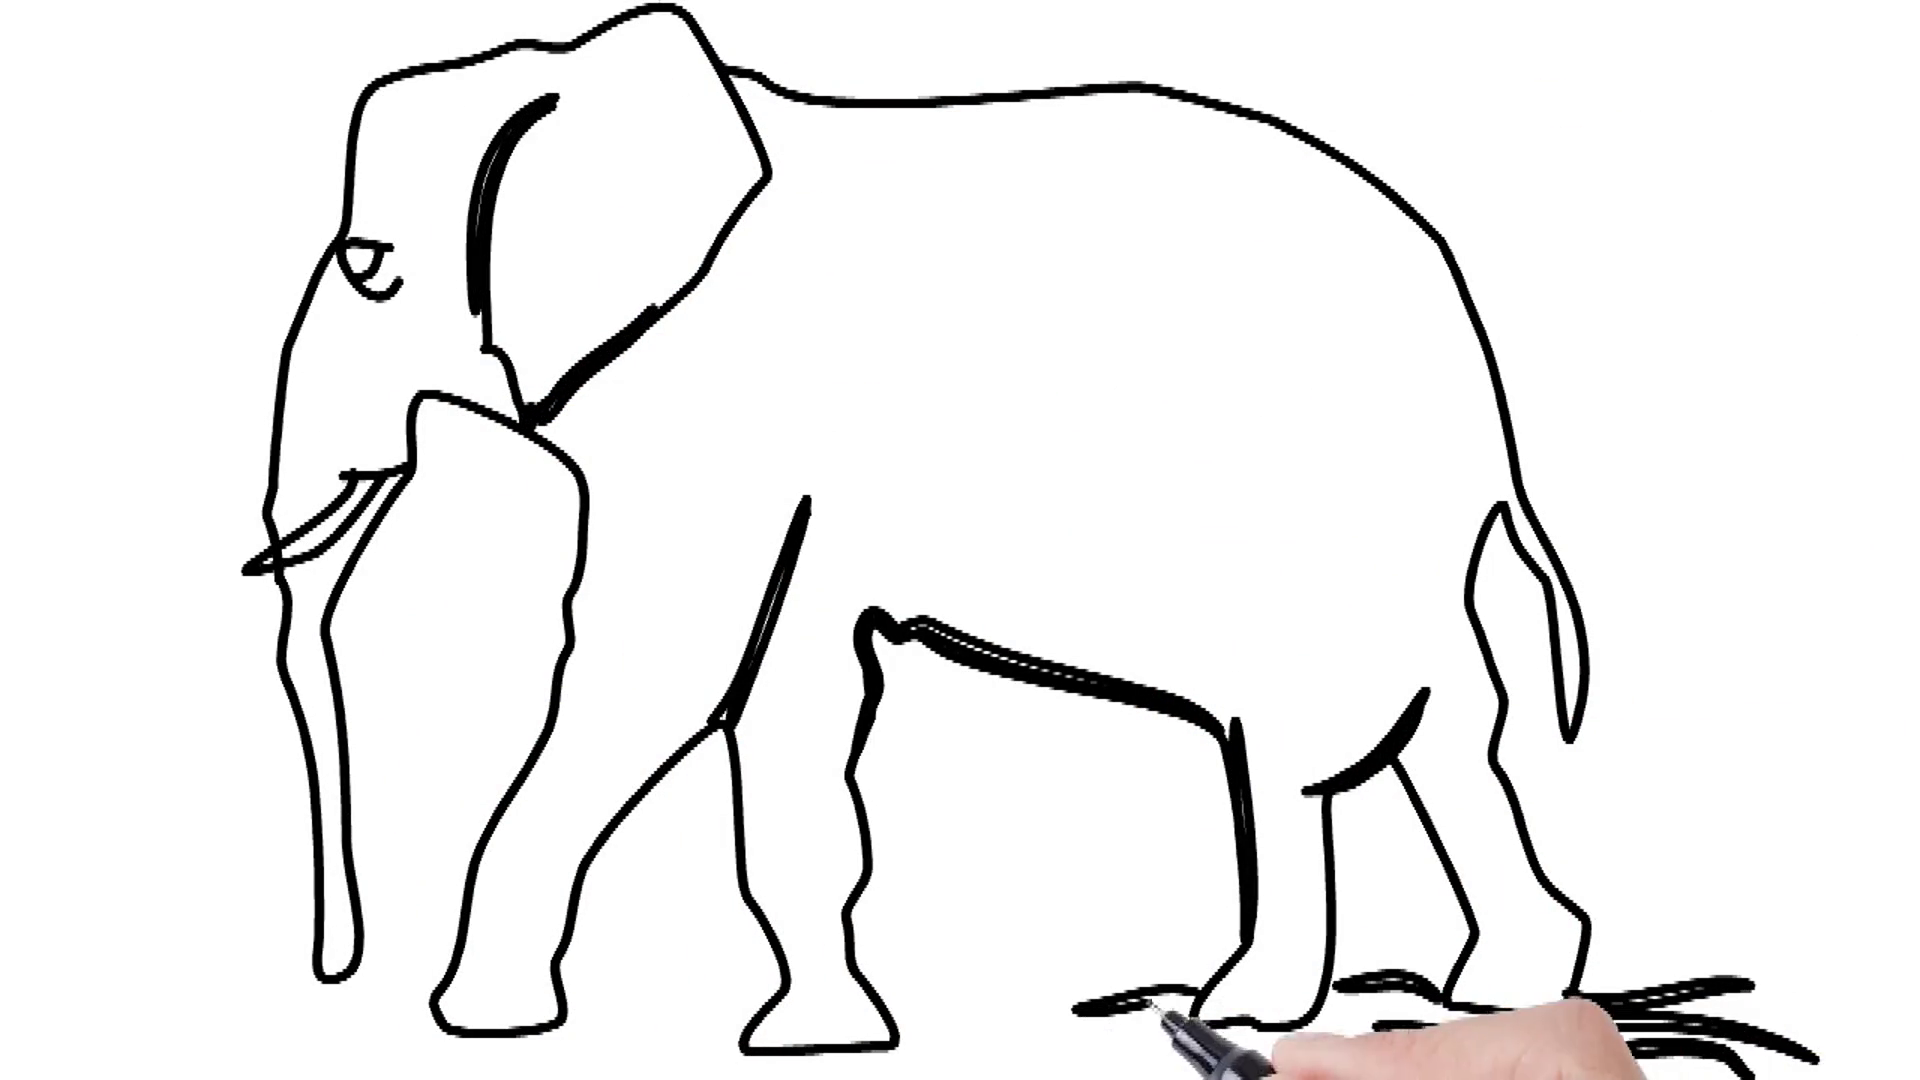 1920x1080 Man Sketching Elephant On Whiteboard Background Animated Sketch